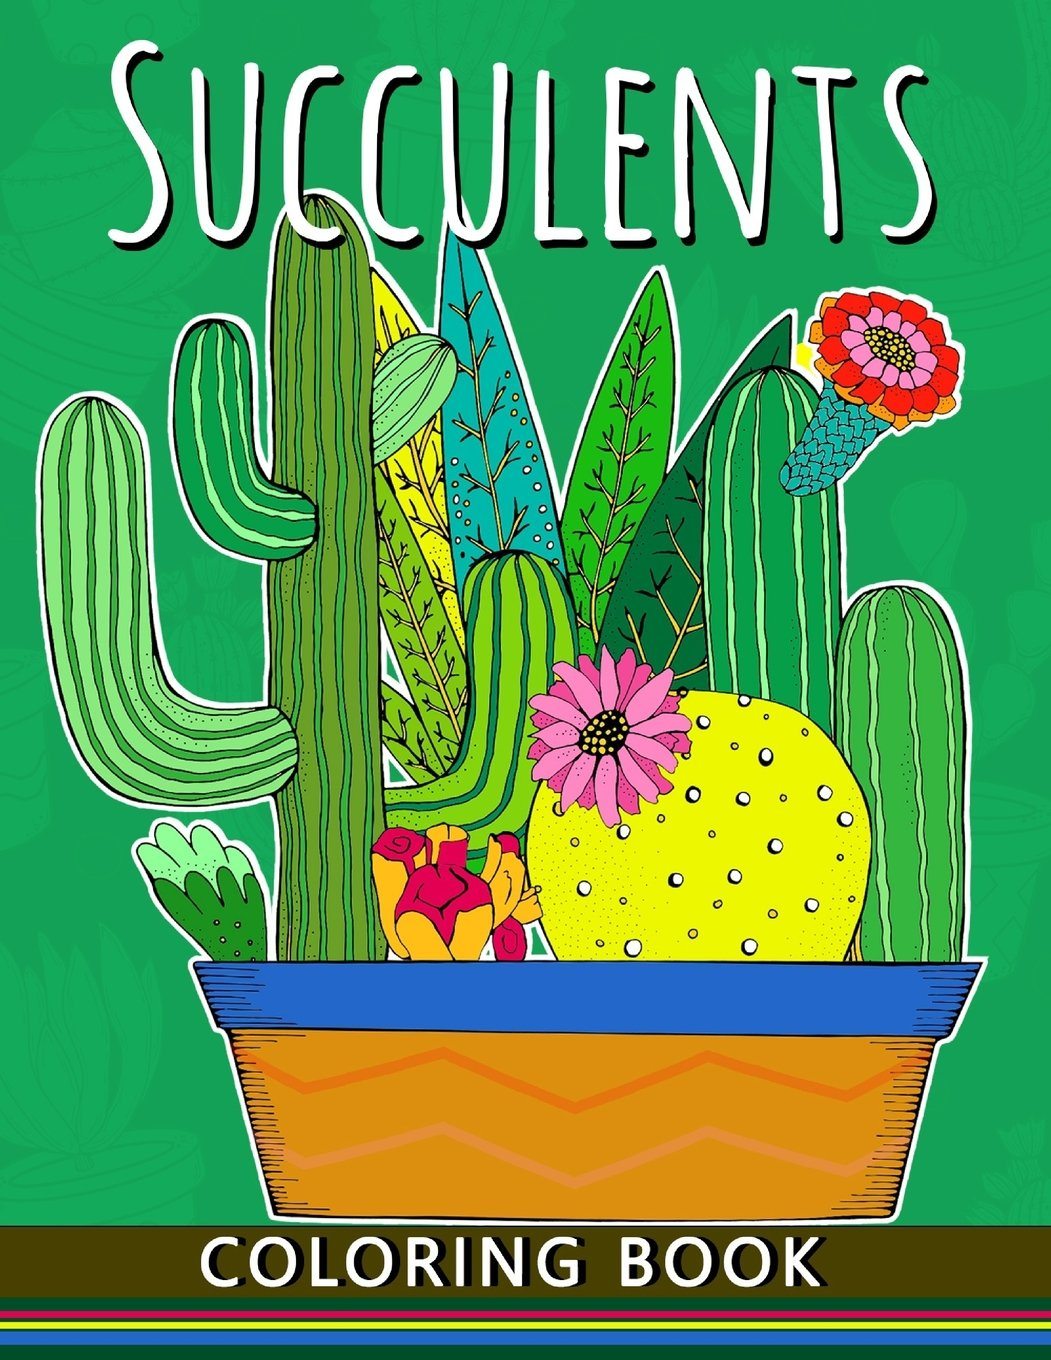 Succulents Coloring Book: Adults Stress-relief Coloring Book For Grown-ups